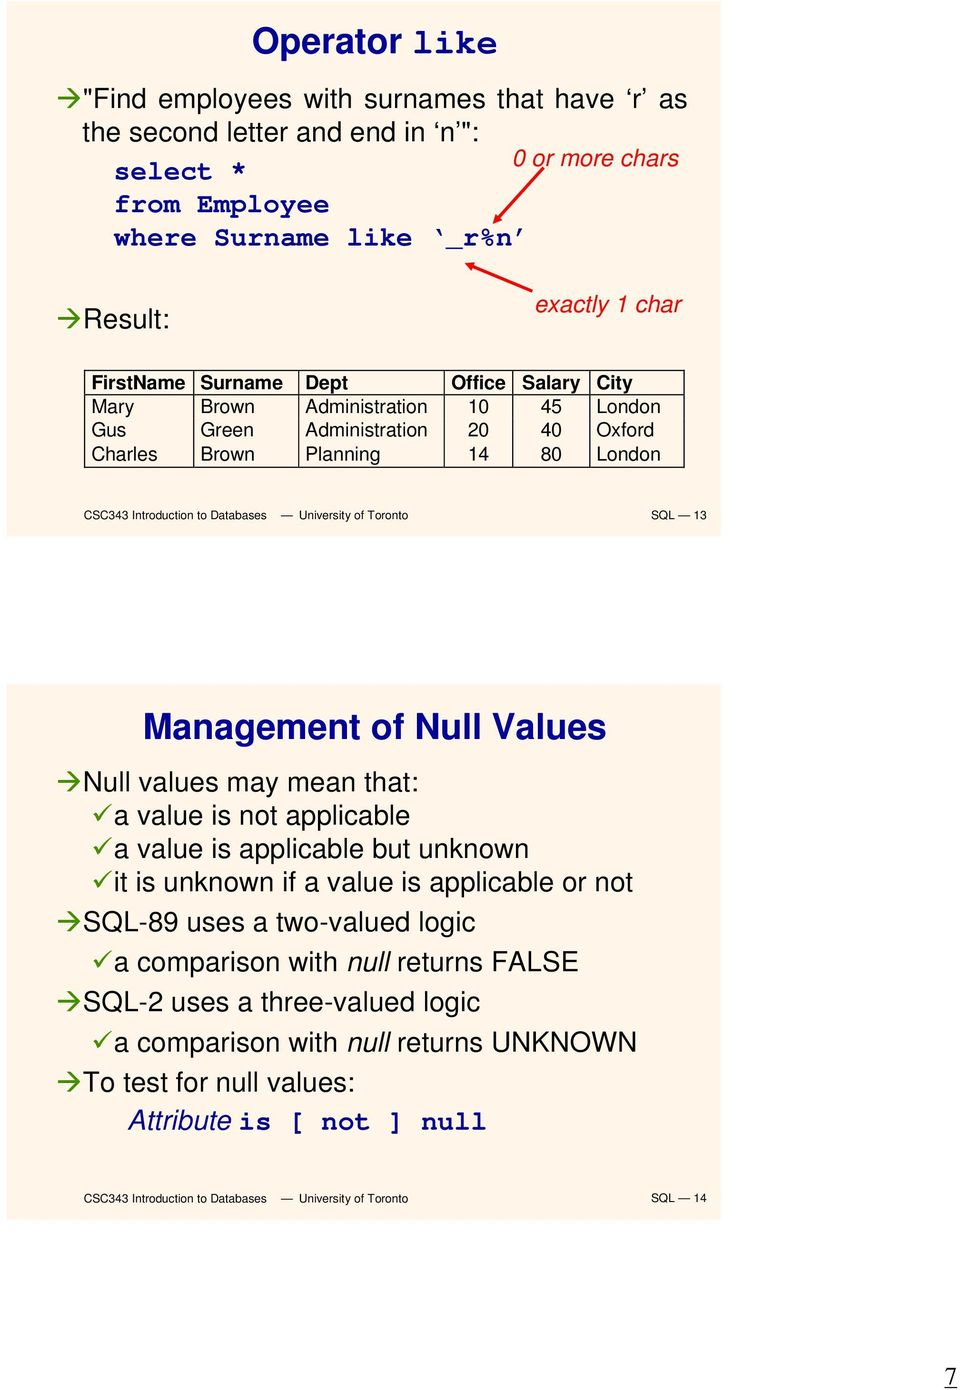 Management of Null Values Null values may mean that: a value is not applicable a value is applicable but unknown it is unknown if a value is applicable or not SQL-89 uses